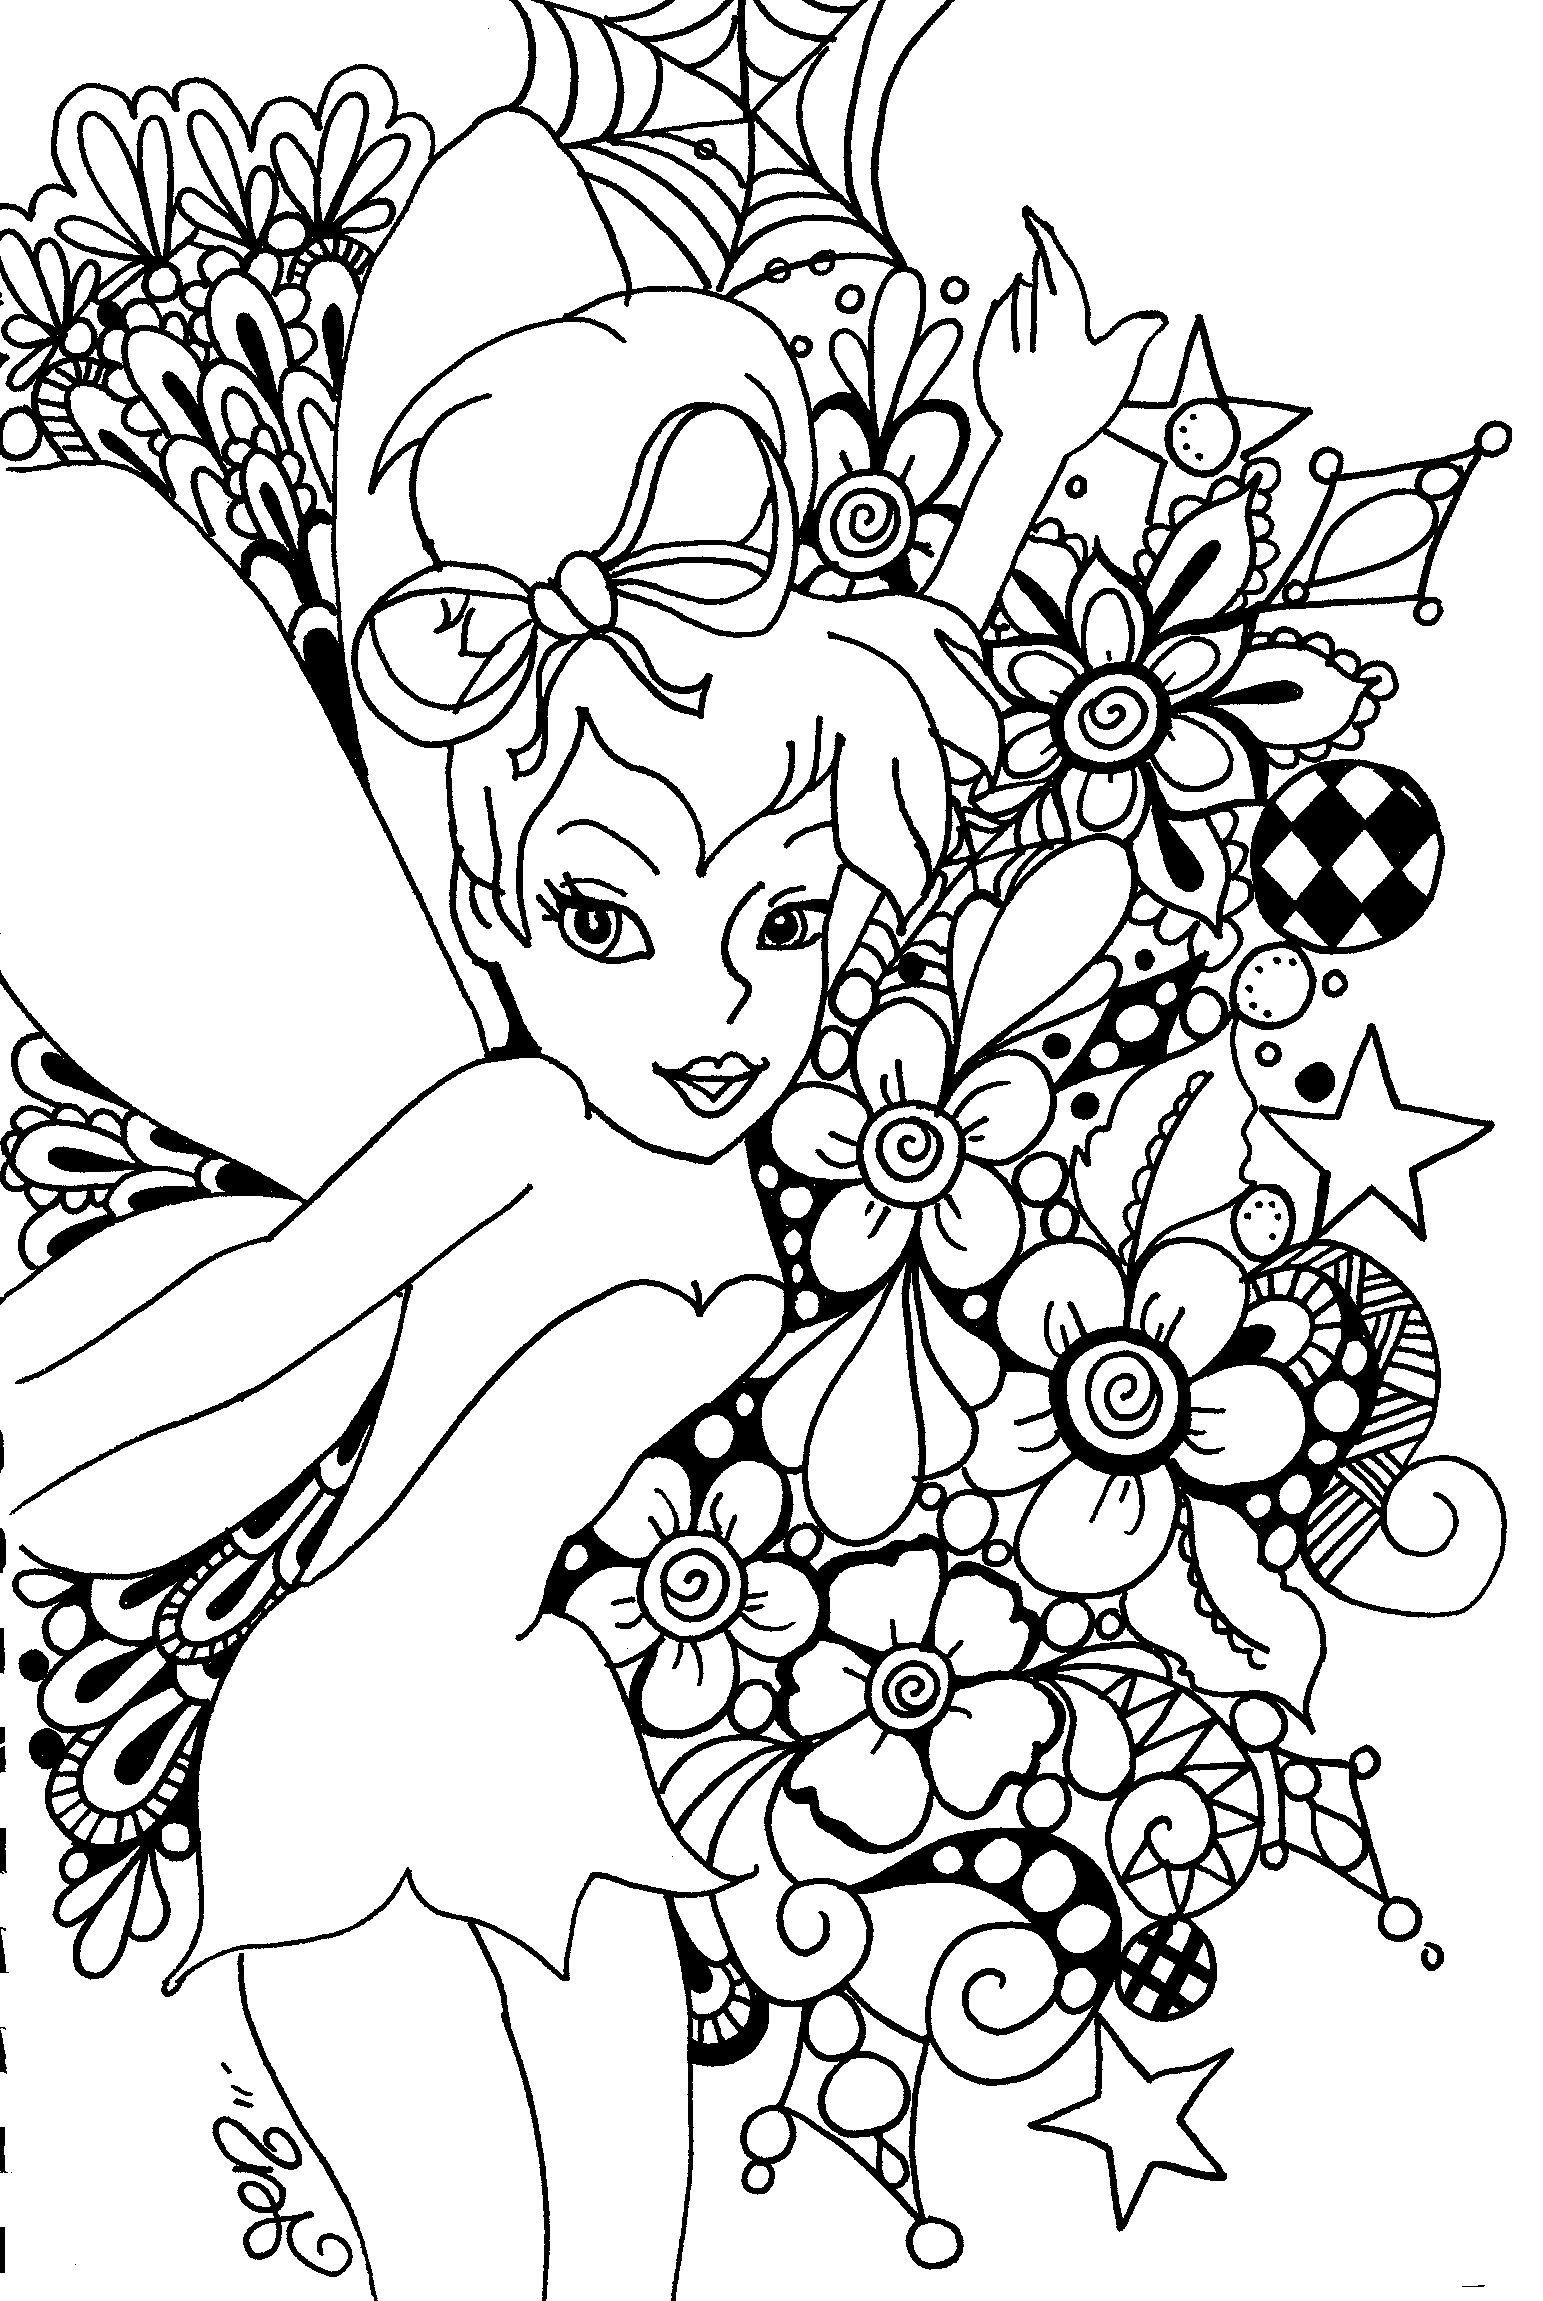 Free Printable Tinkerbell Coloring Pages For Kids | Art!! | Coloring - Tinkerbell Coloring Pages Printable Free